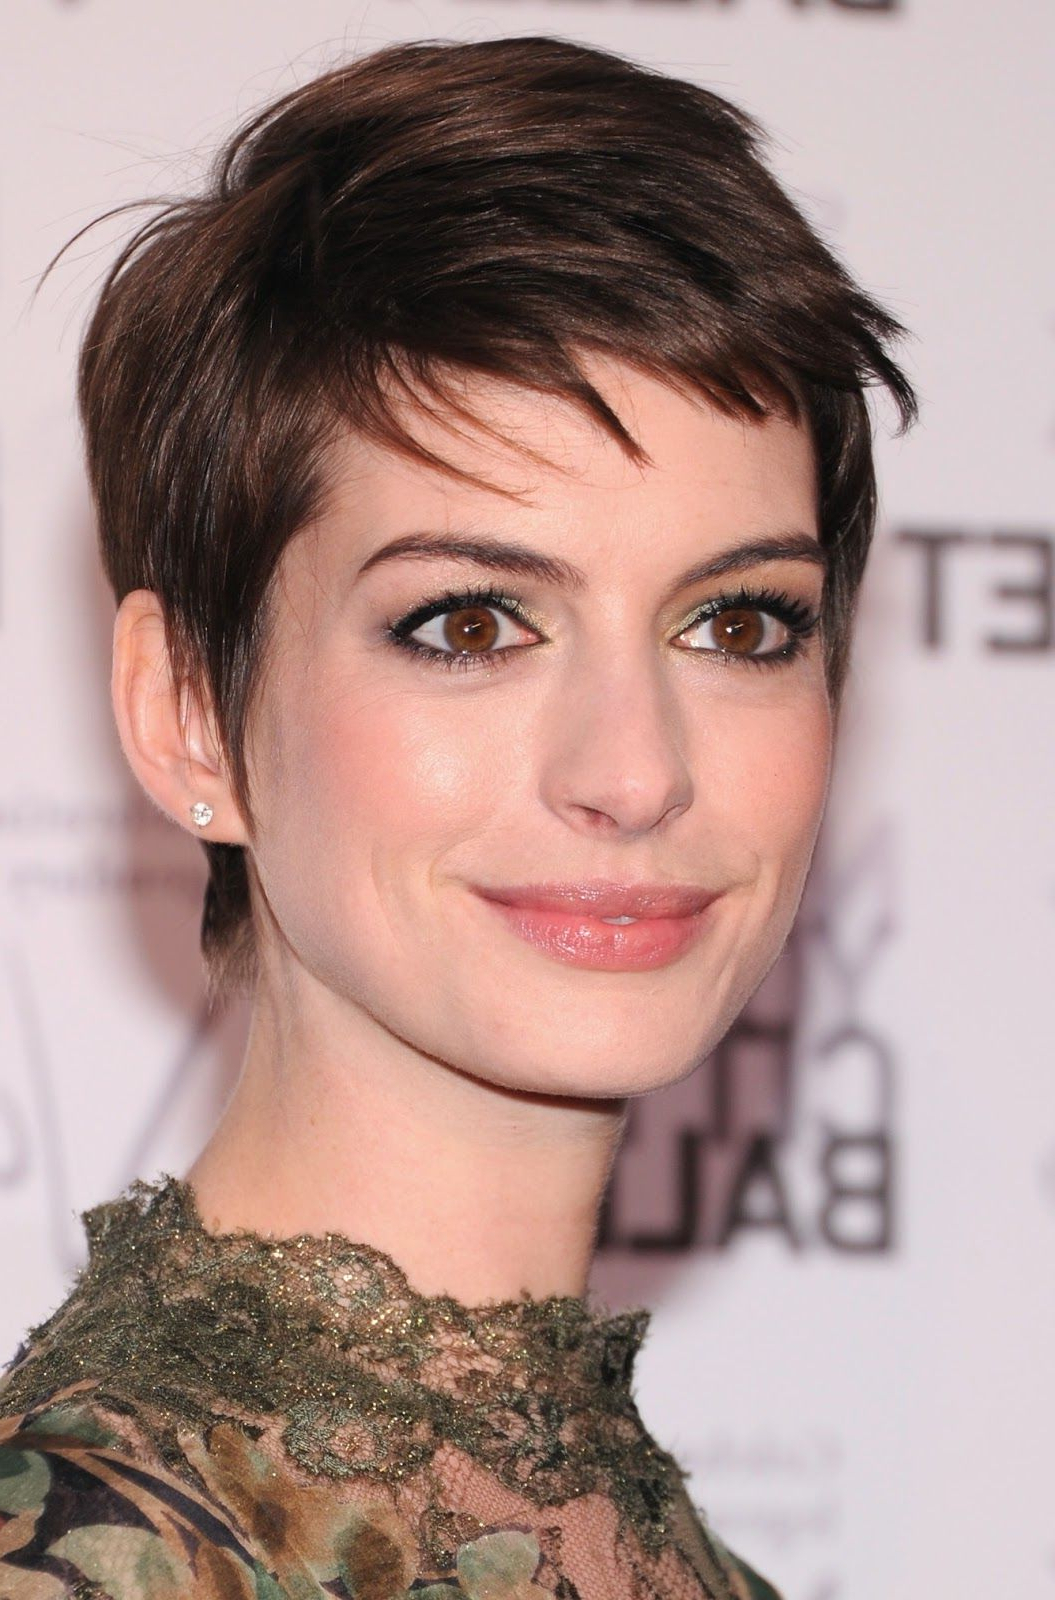 Anne Hathaway Short And Sleek Haircuts Teen Girls Short Hairstyles Inside Anne Hathaway Short Hairstyles (Gallery 1 of 25)